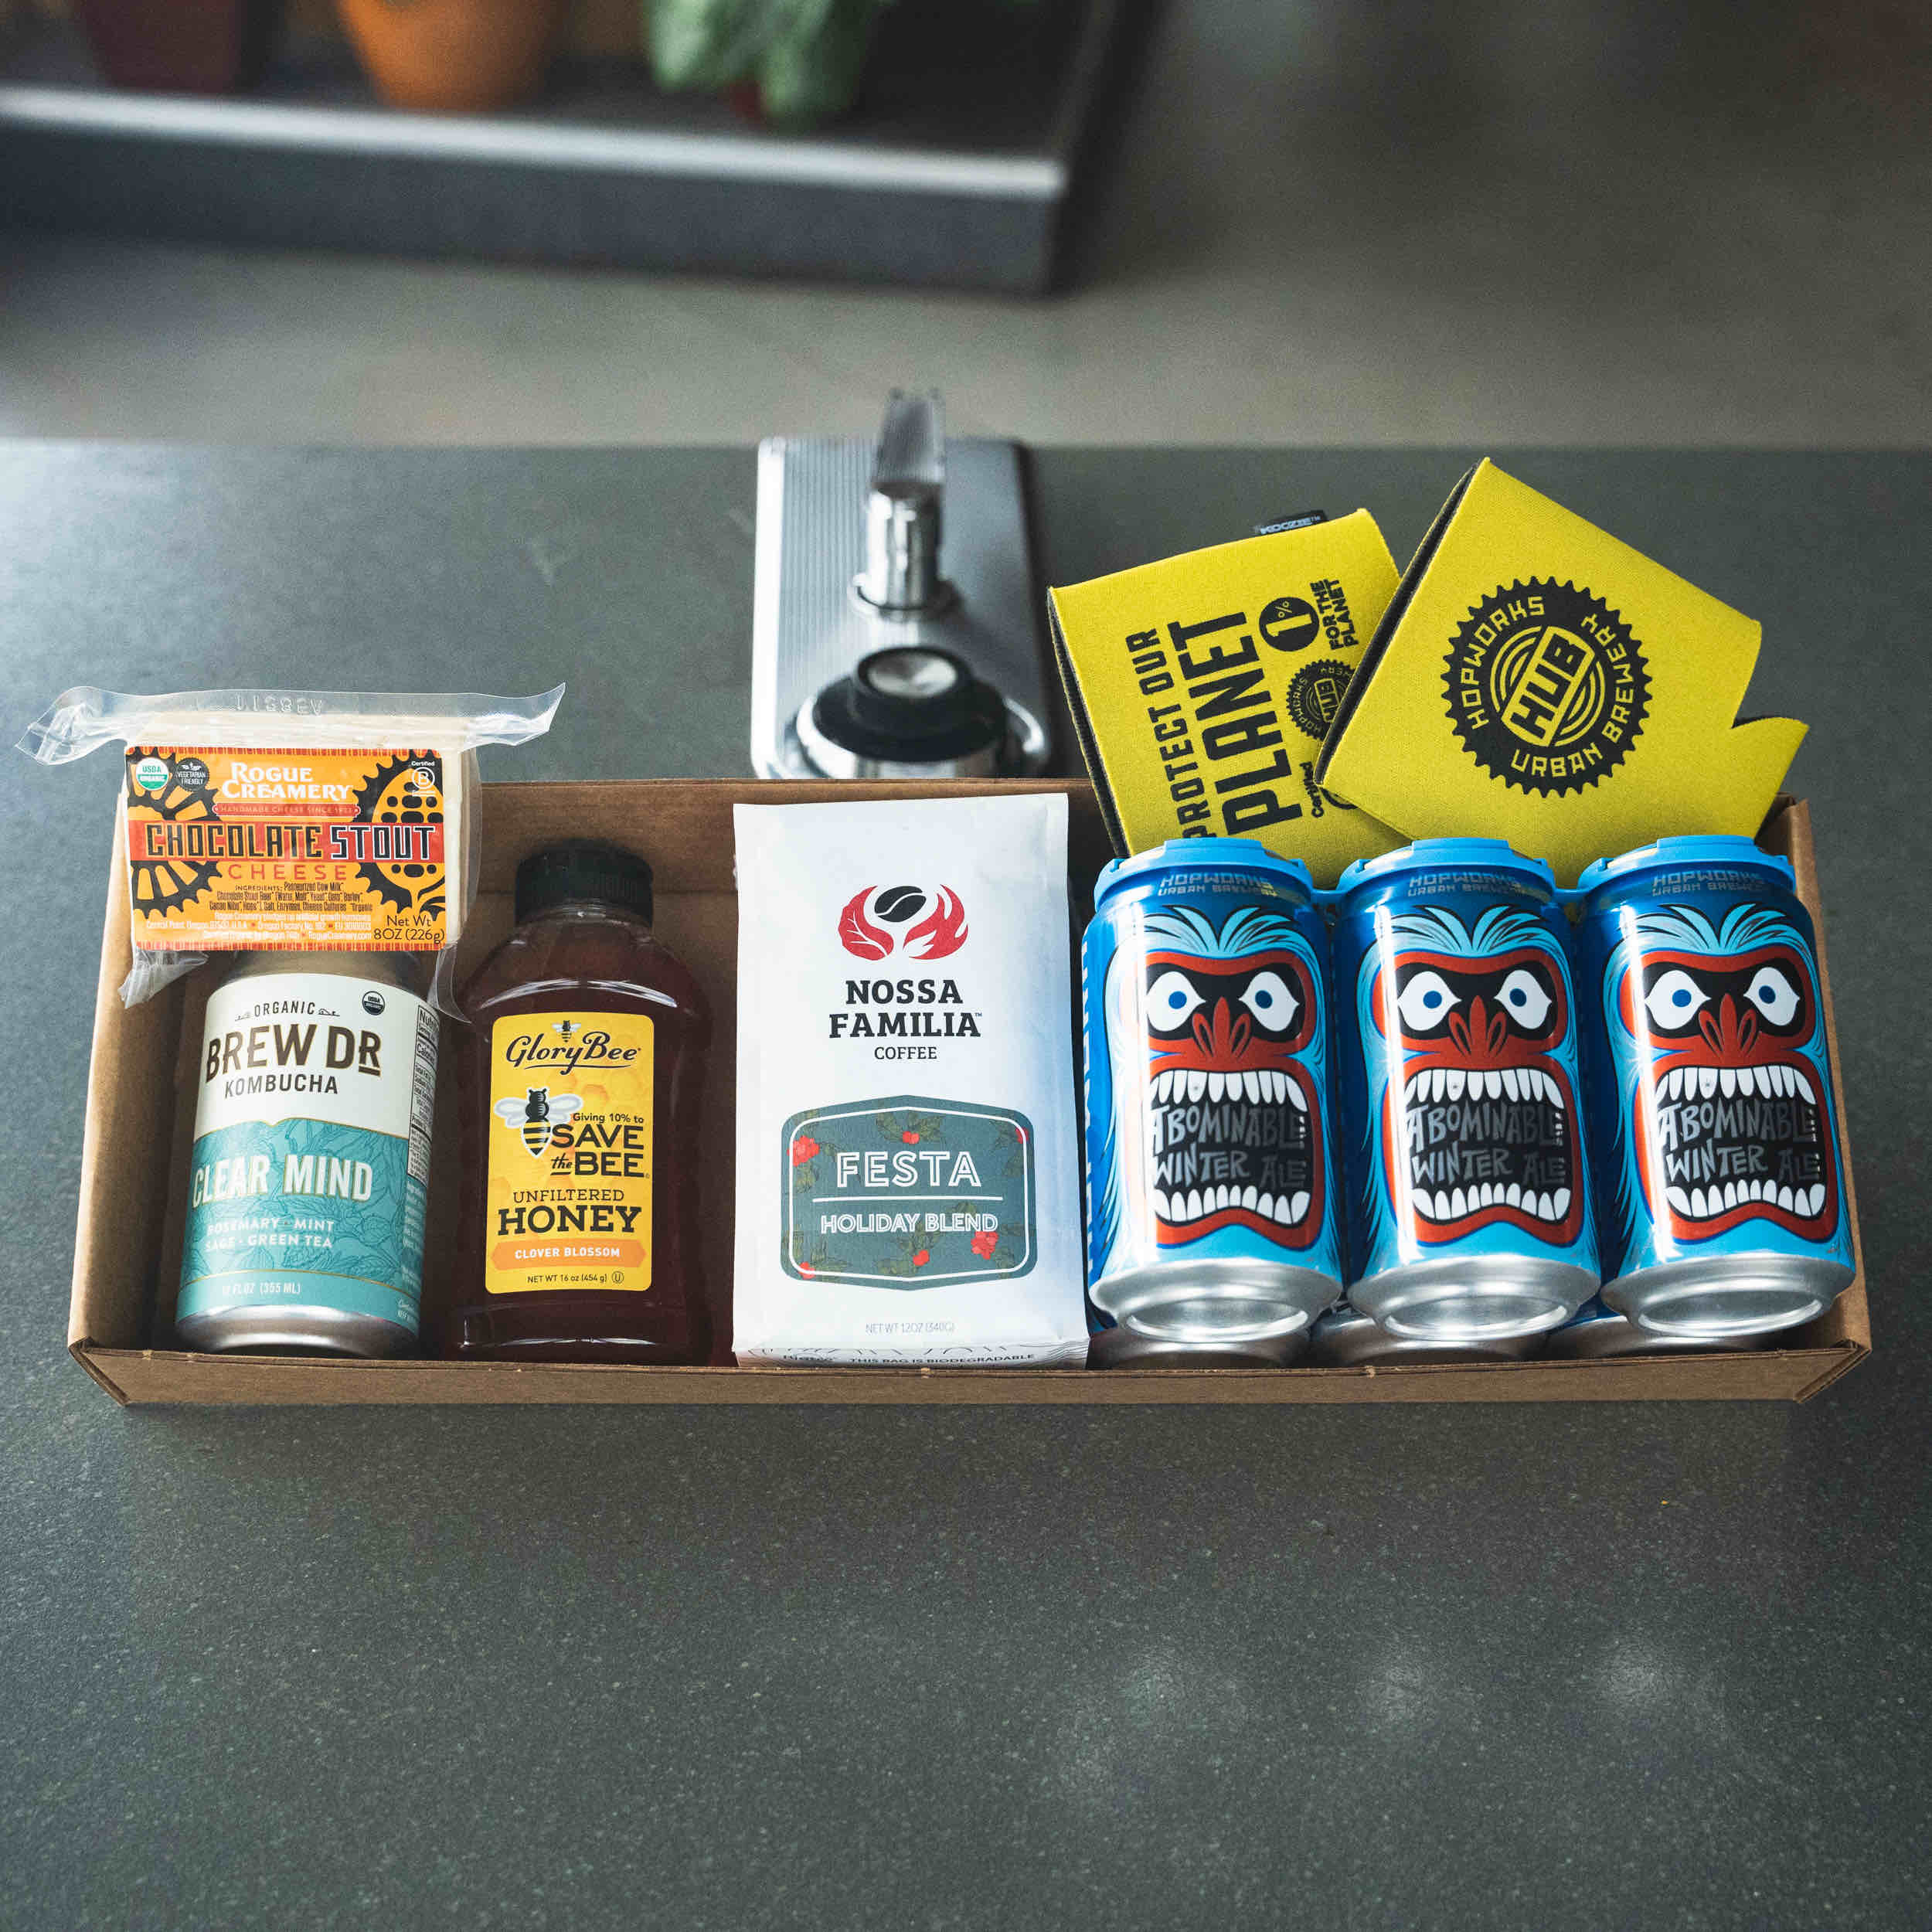 Hopworks opens a festive Holiday B Store featuring local Certified B Corp products. (image courtesy of Hopworks Urban Brewery)